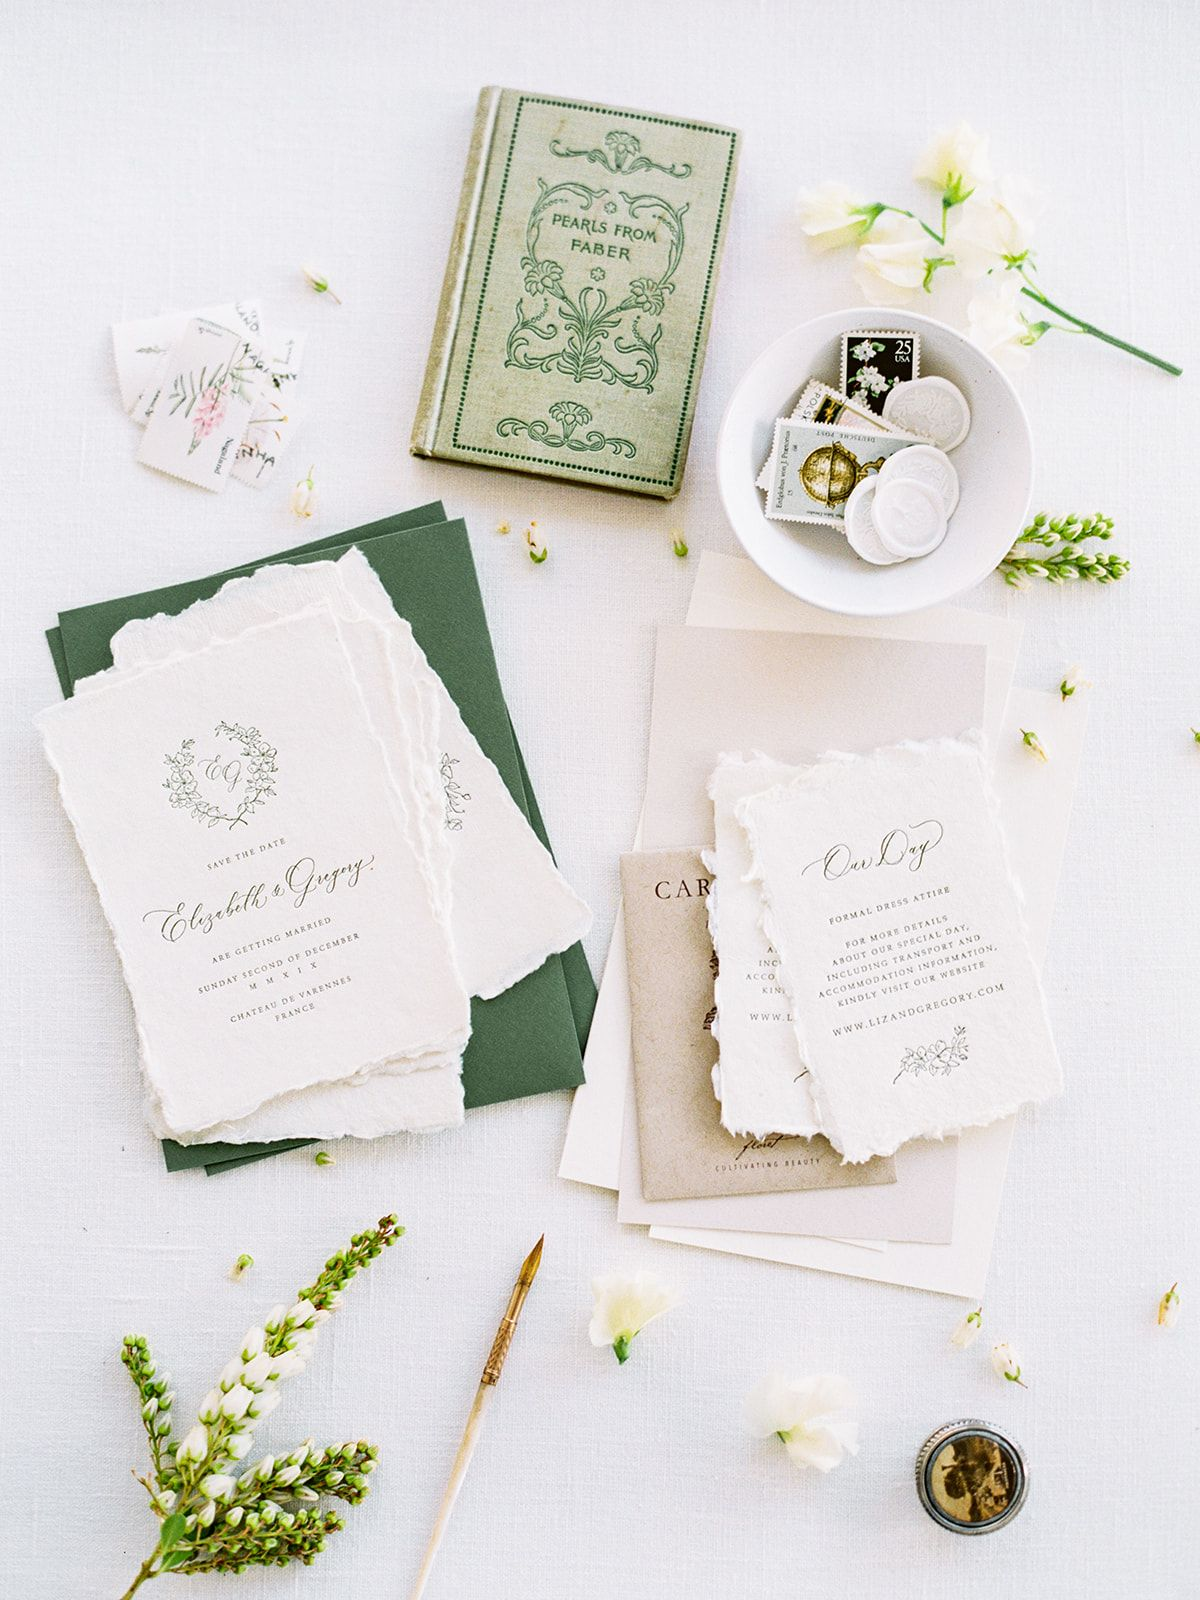 Paper Files No 2 Beautiful Wedding Stationery You Should Consider For Your Big Day Beautiful Wedding Stationery Wedding Invitation Paper Wedding Stationery